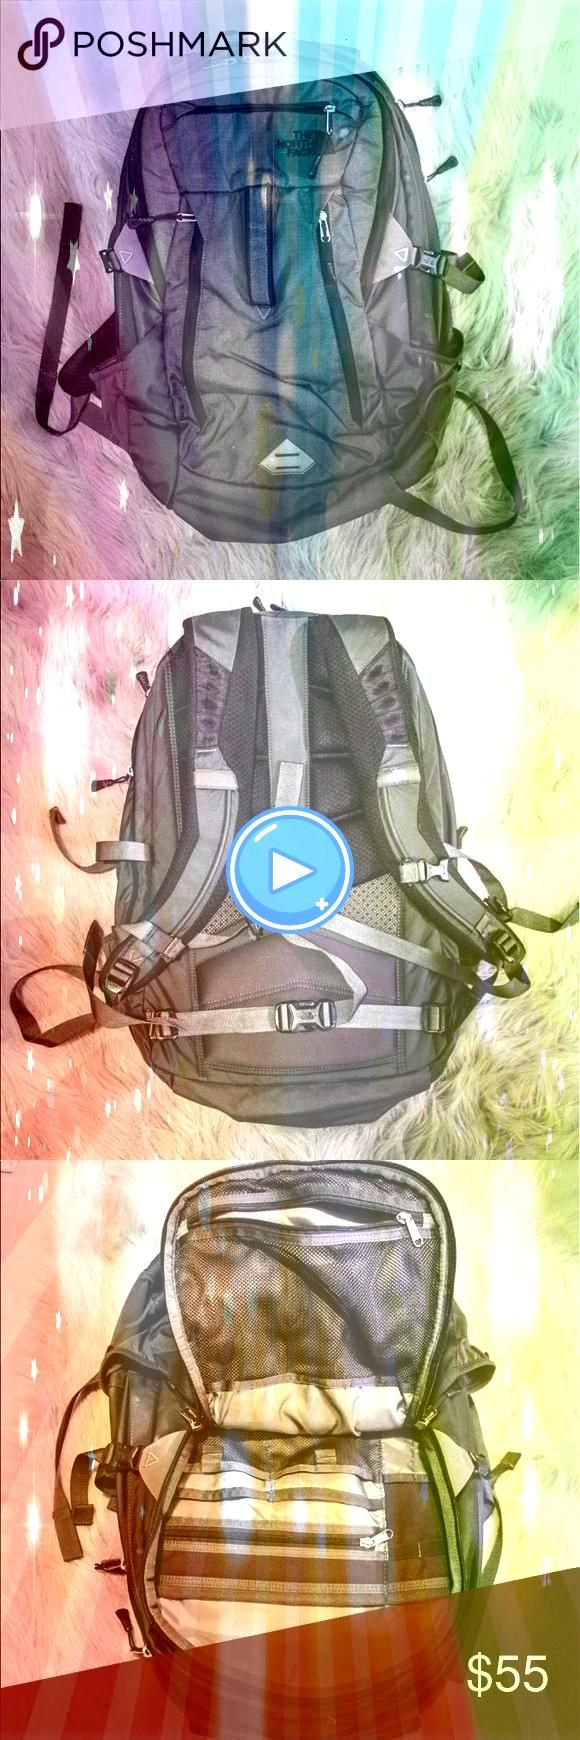 Face Backpack Bought from another posher who used it once but it was large North Face Backpack Bought from another posher who used it once but it was large  Eyeshadow  Ma...